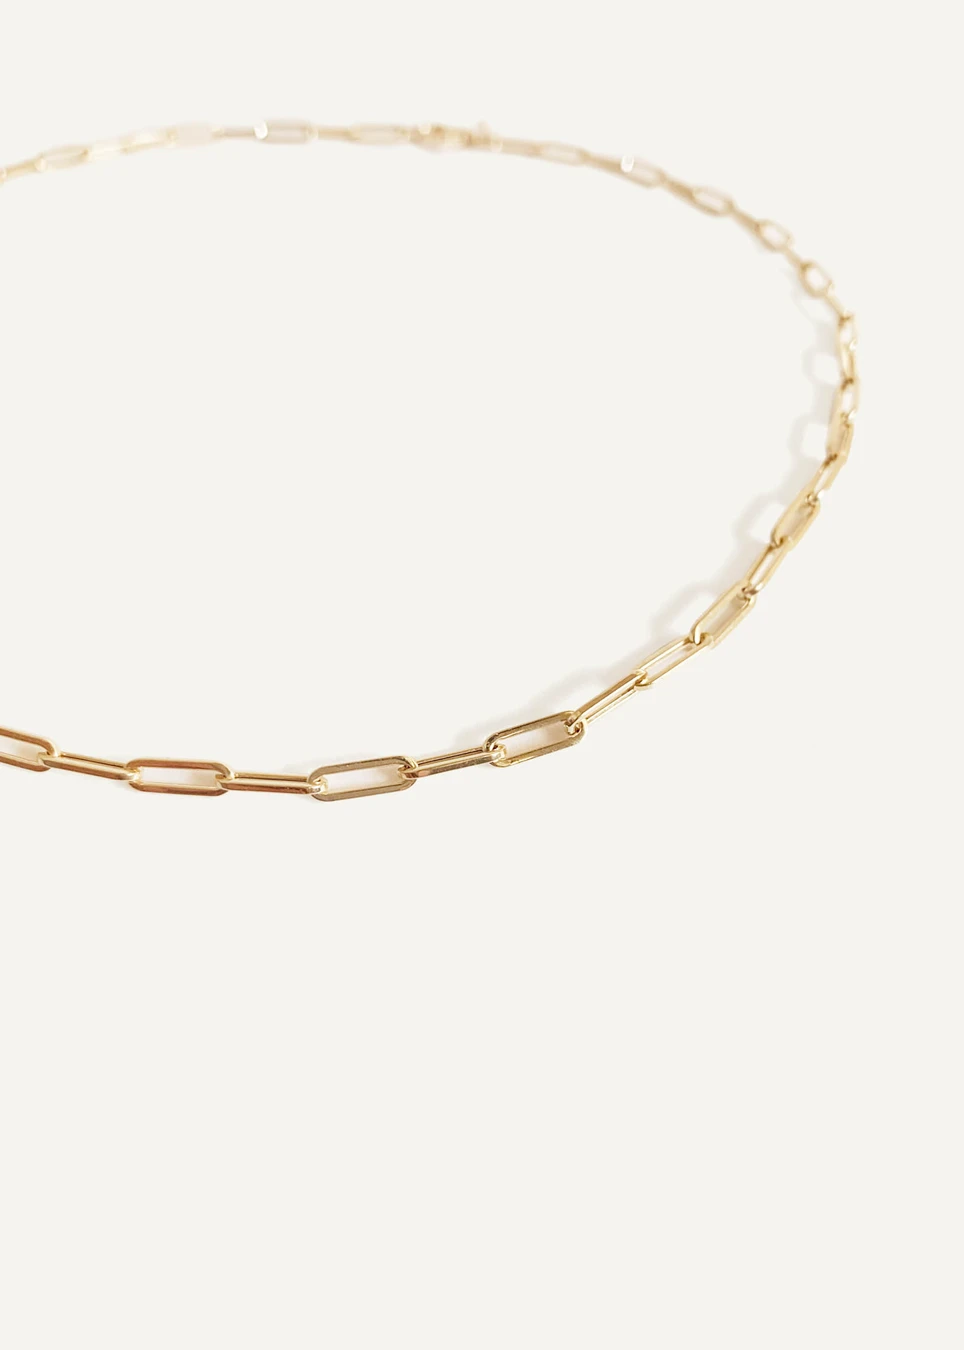 Petite Link Chain Necklace Chain Link Necklace Chain Necklace Yellow Gold Chain